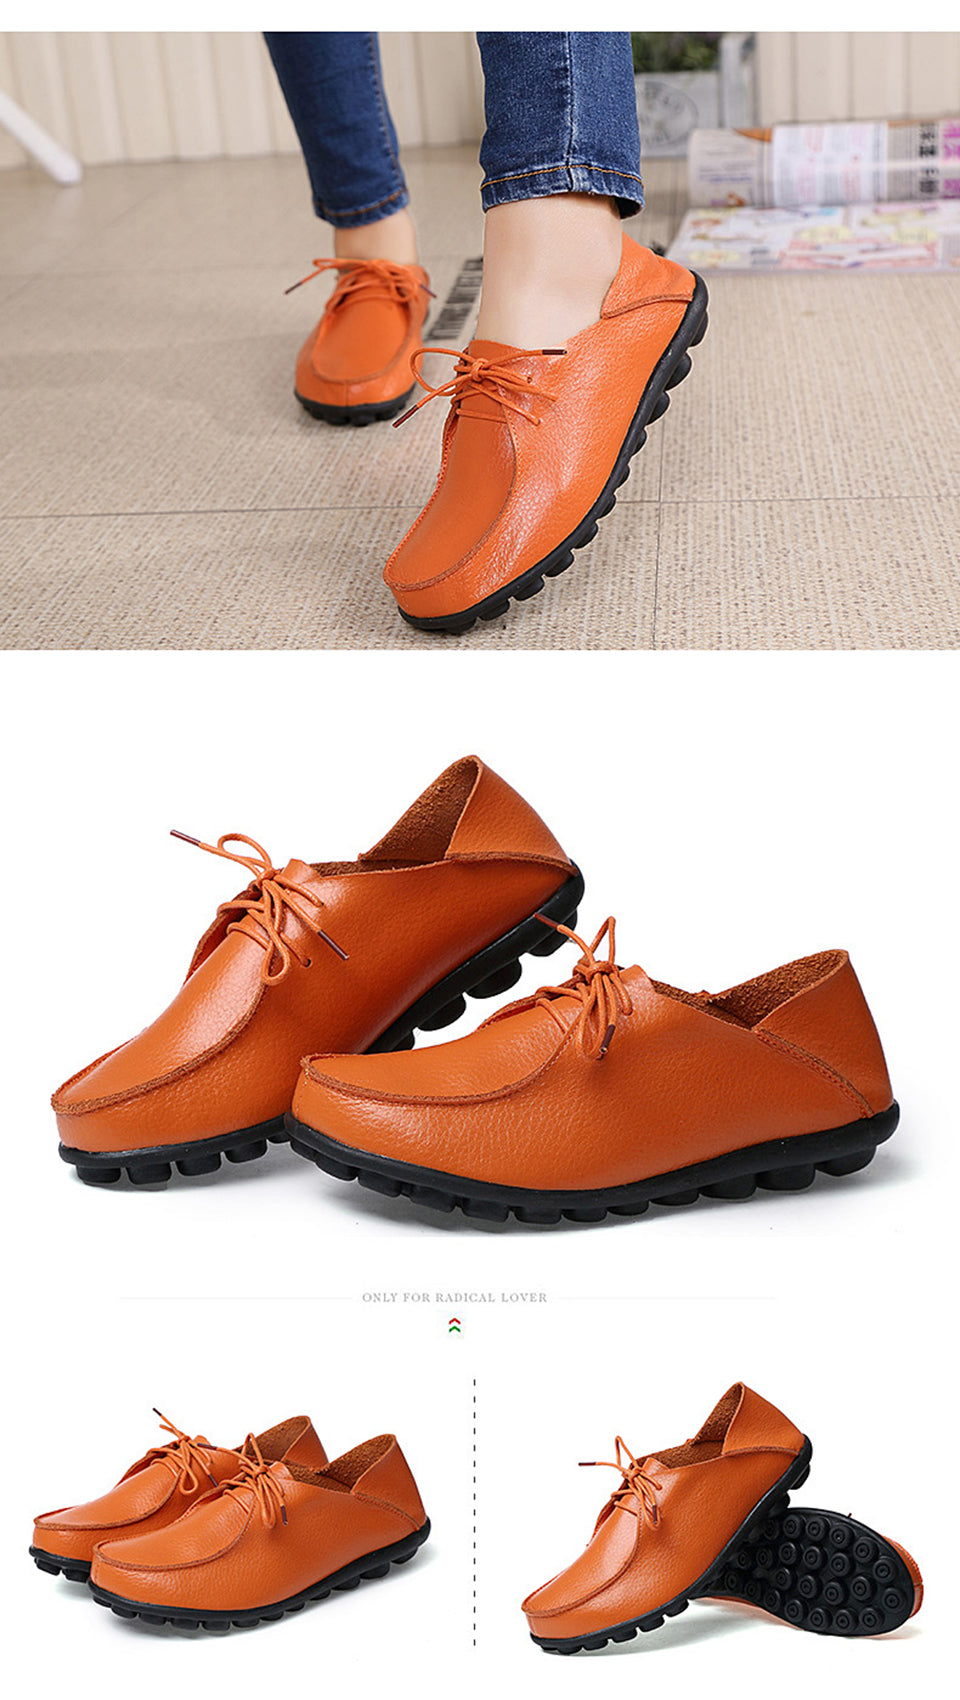 more orange lace up leather shoes with black nodulated grippy base 01